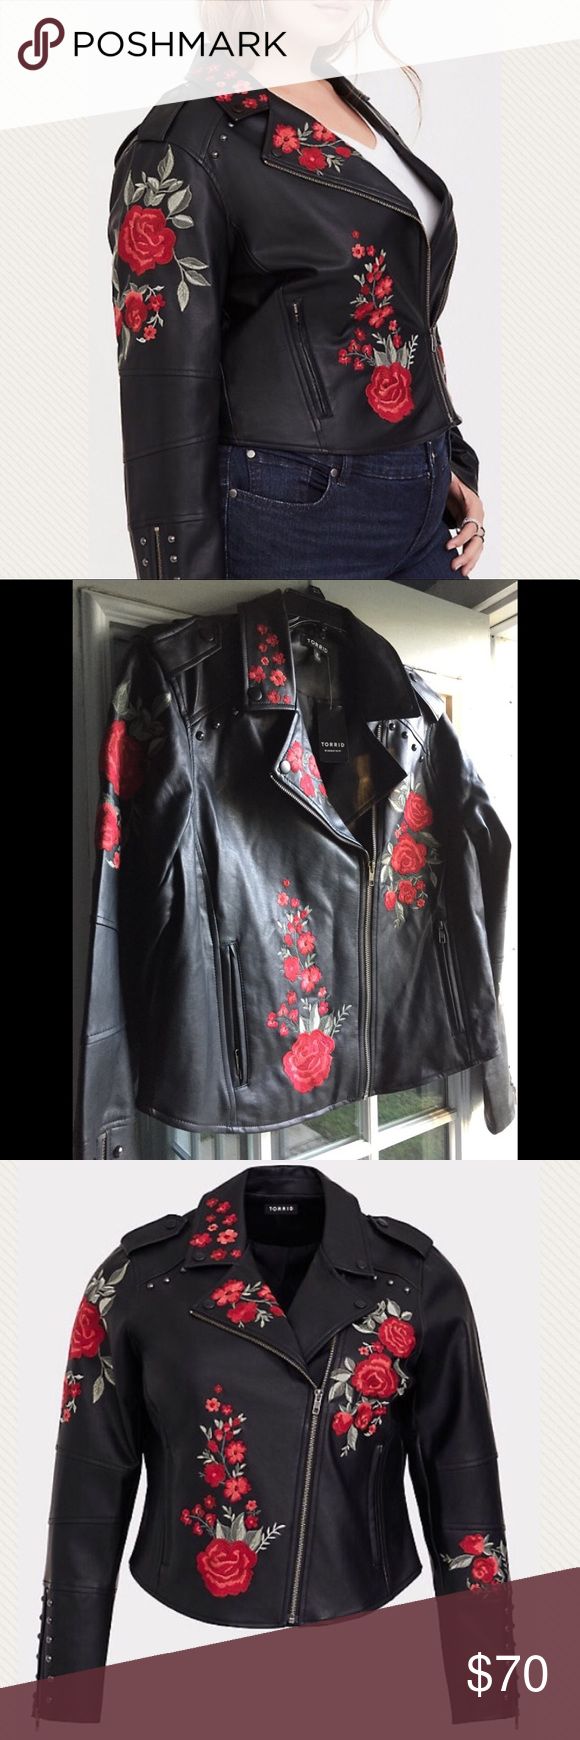 781e54f9ceceb 🌹TORRID 1 Black Red Roses 🌹 Leather Moto Jacket Gorgeous Fitted    Flattering Black faux